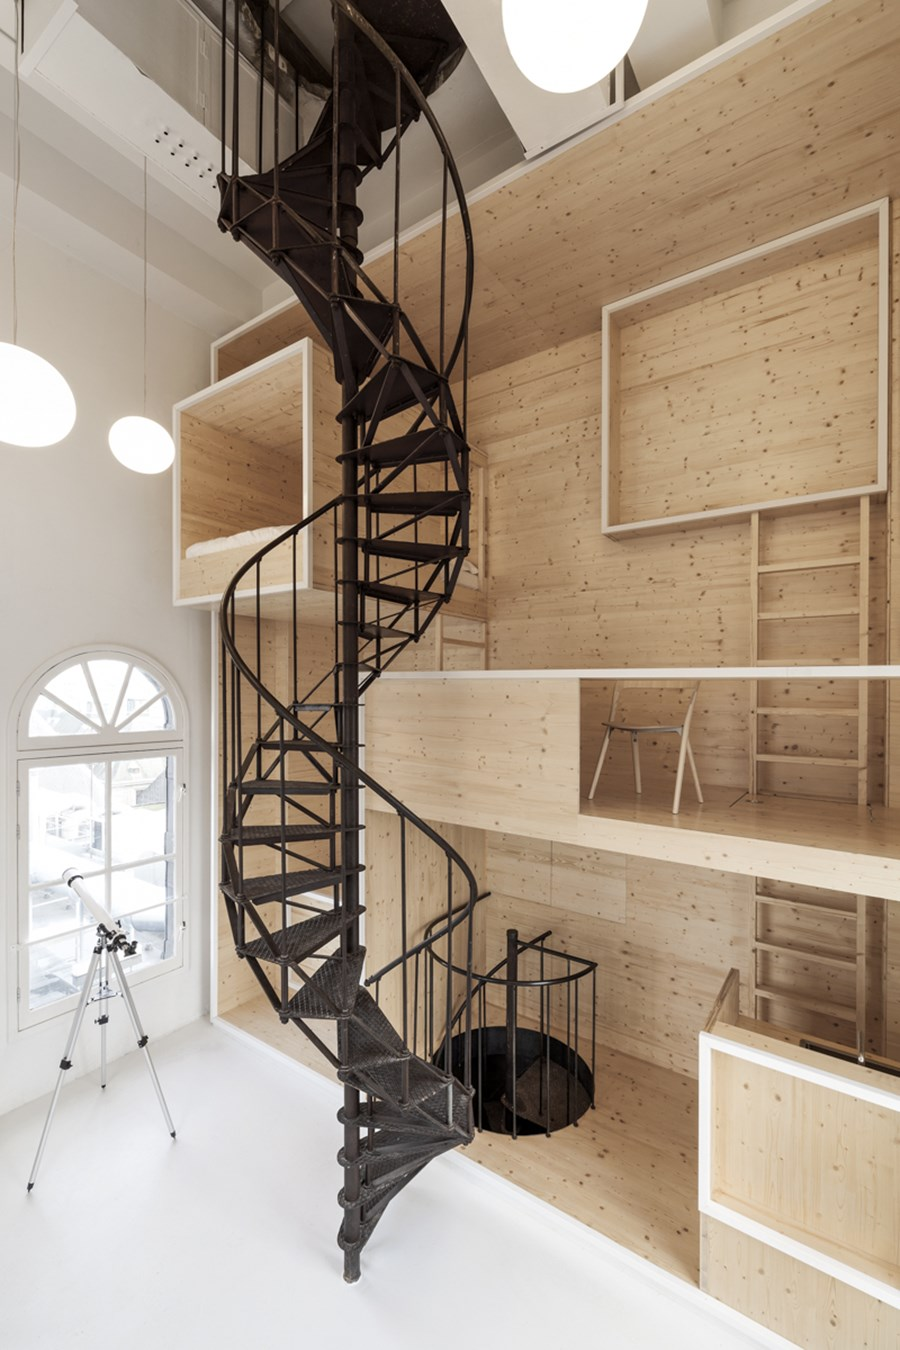 Culture 01 by i29 interior architects